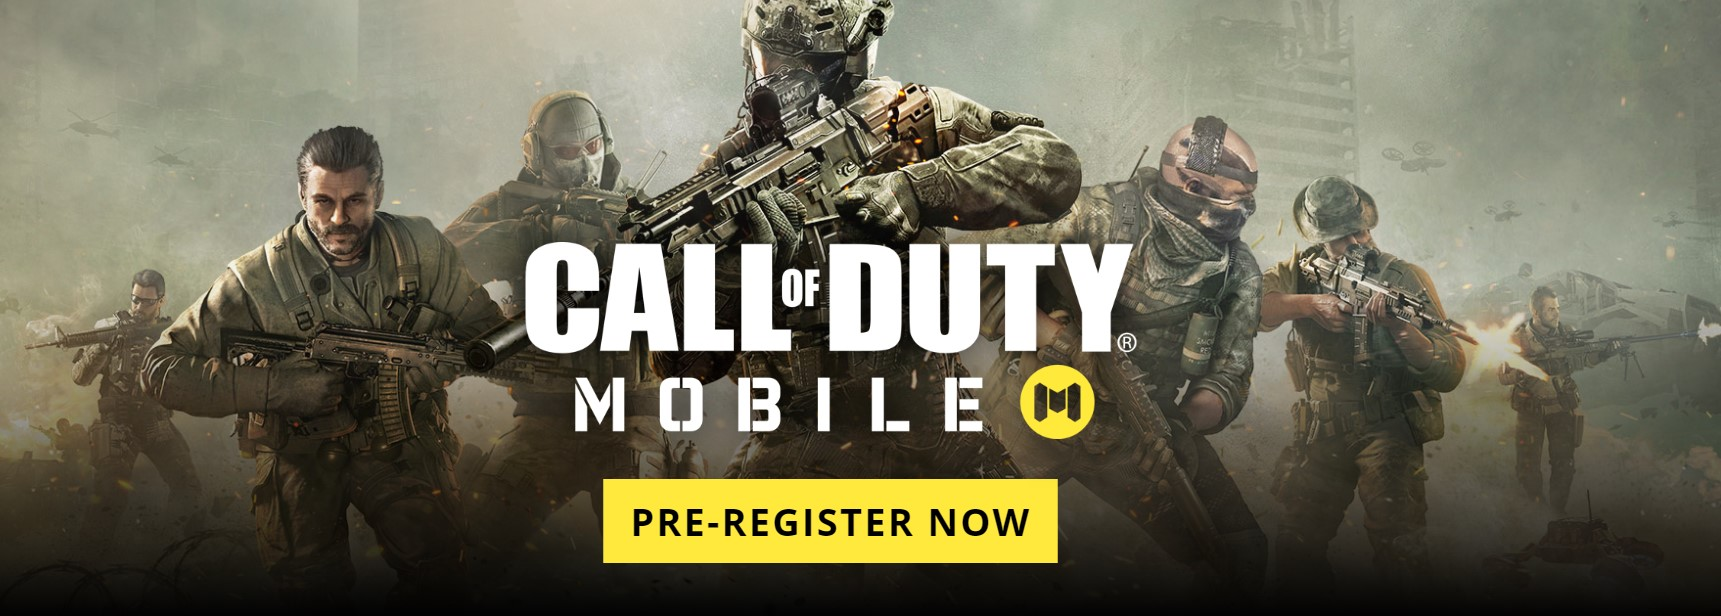 Call of Duty: Mobile abrió el registro para su versión en Android e iOS